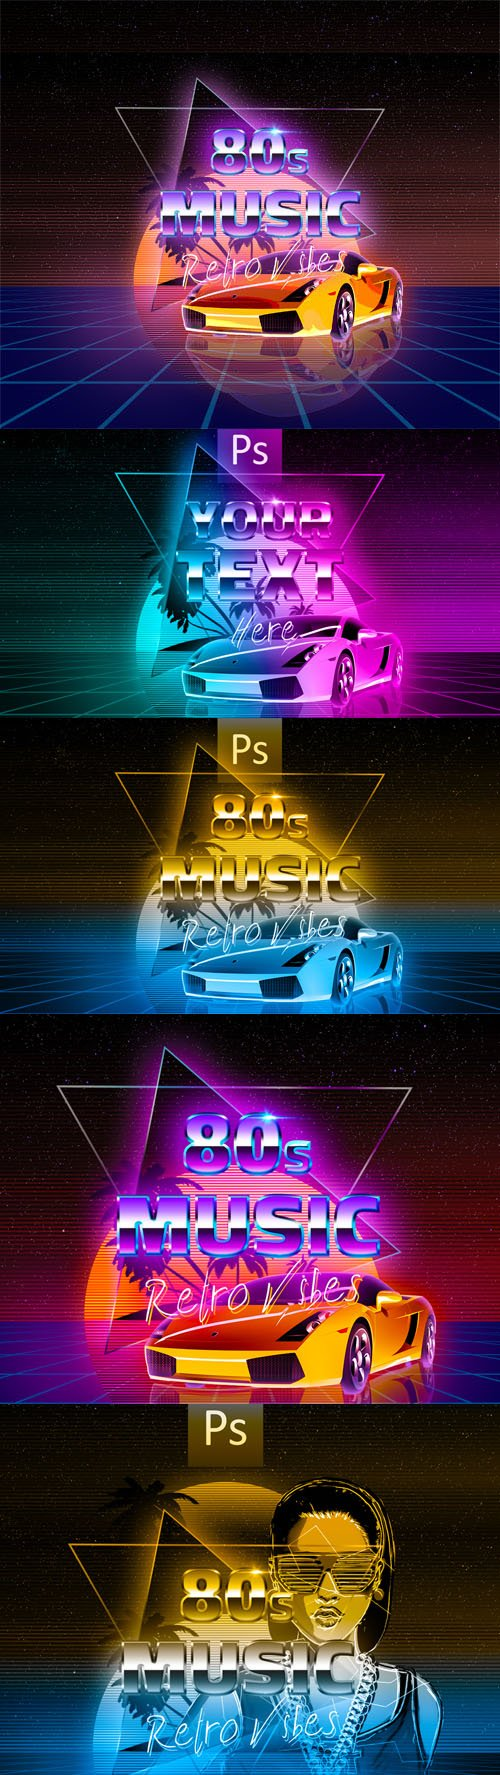 80's Retro Backgrounds & Text Effects for Photoshop